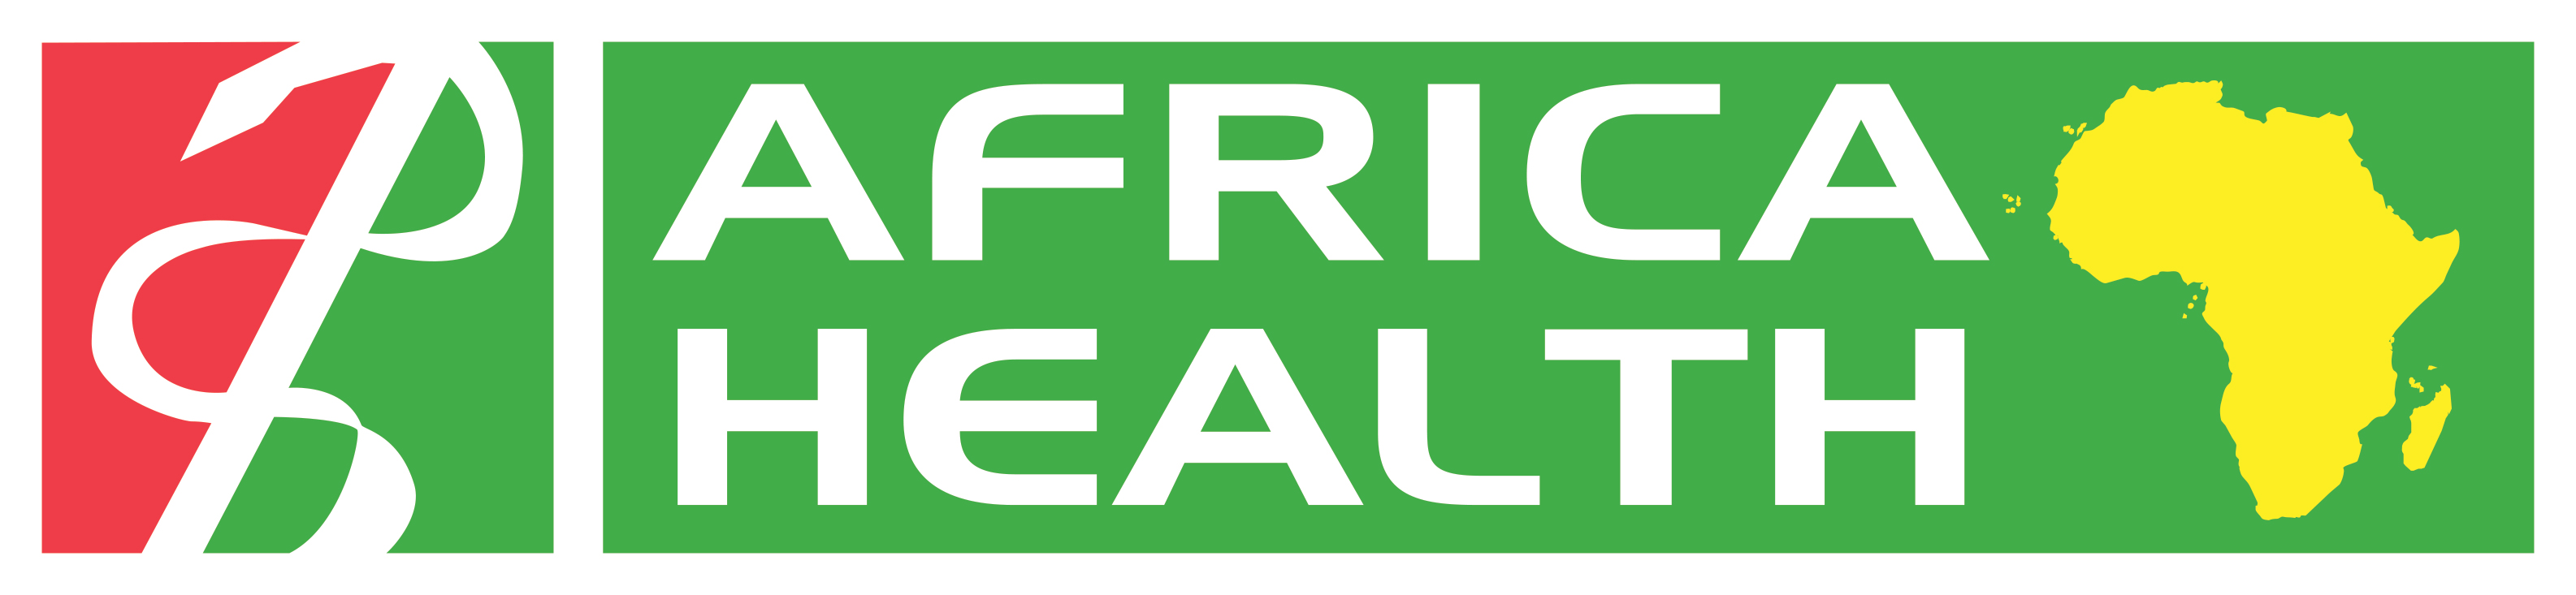 Africa's largest healthcare exhibition will be back at Gallagher